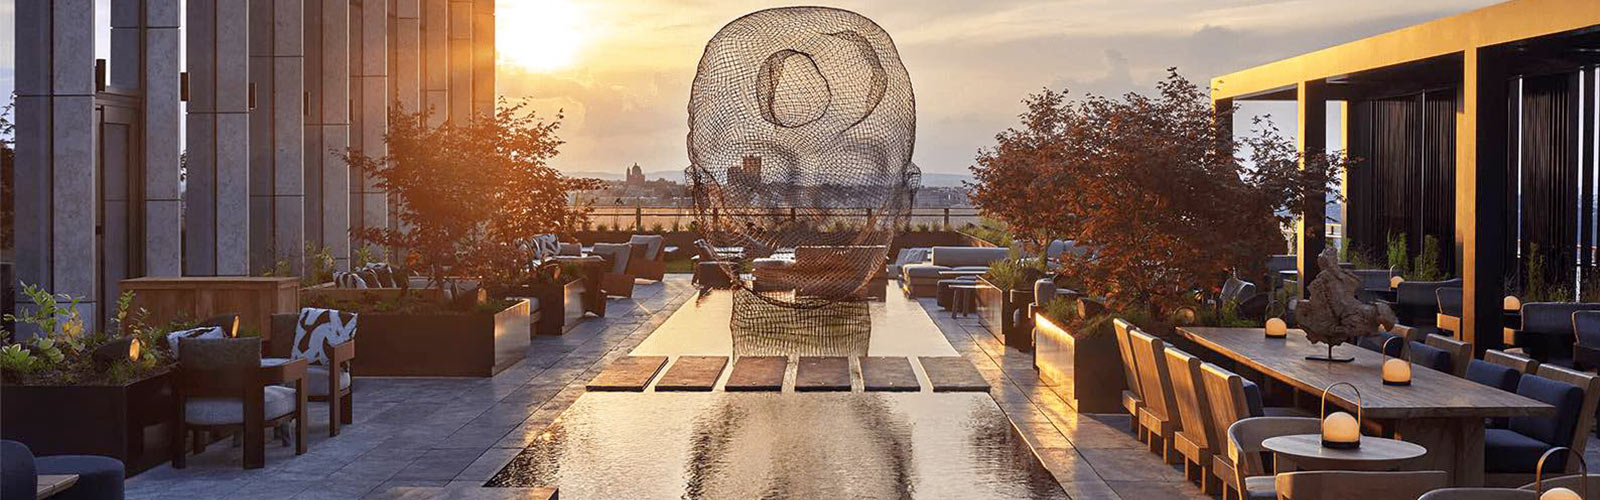 Dazzling view of the sunset from the balcony of the Equinox Hotel with multiple cozy seating areas and a modern wire sculpture over a water feature.